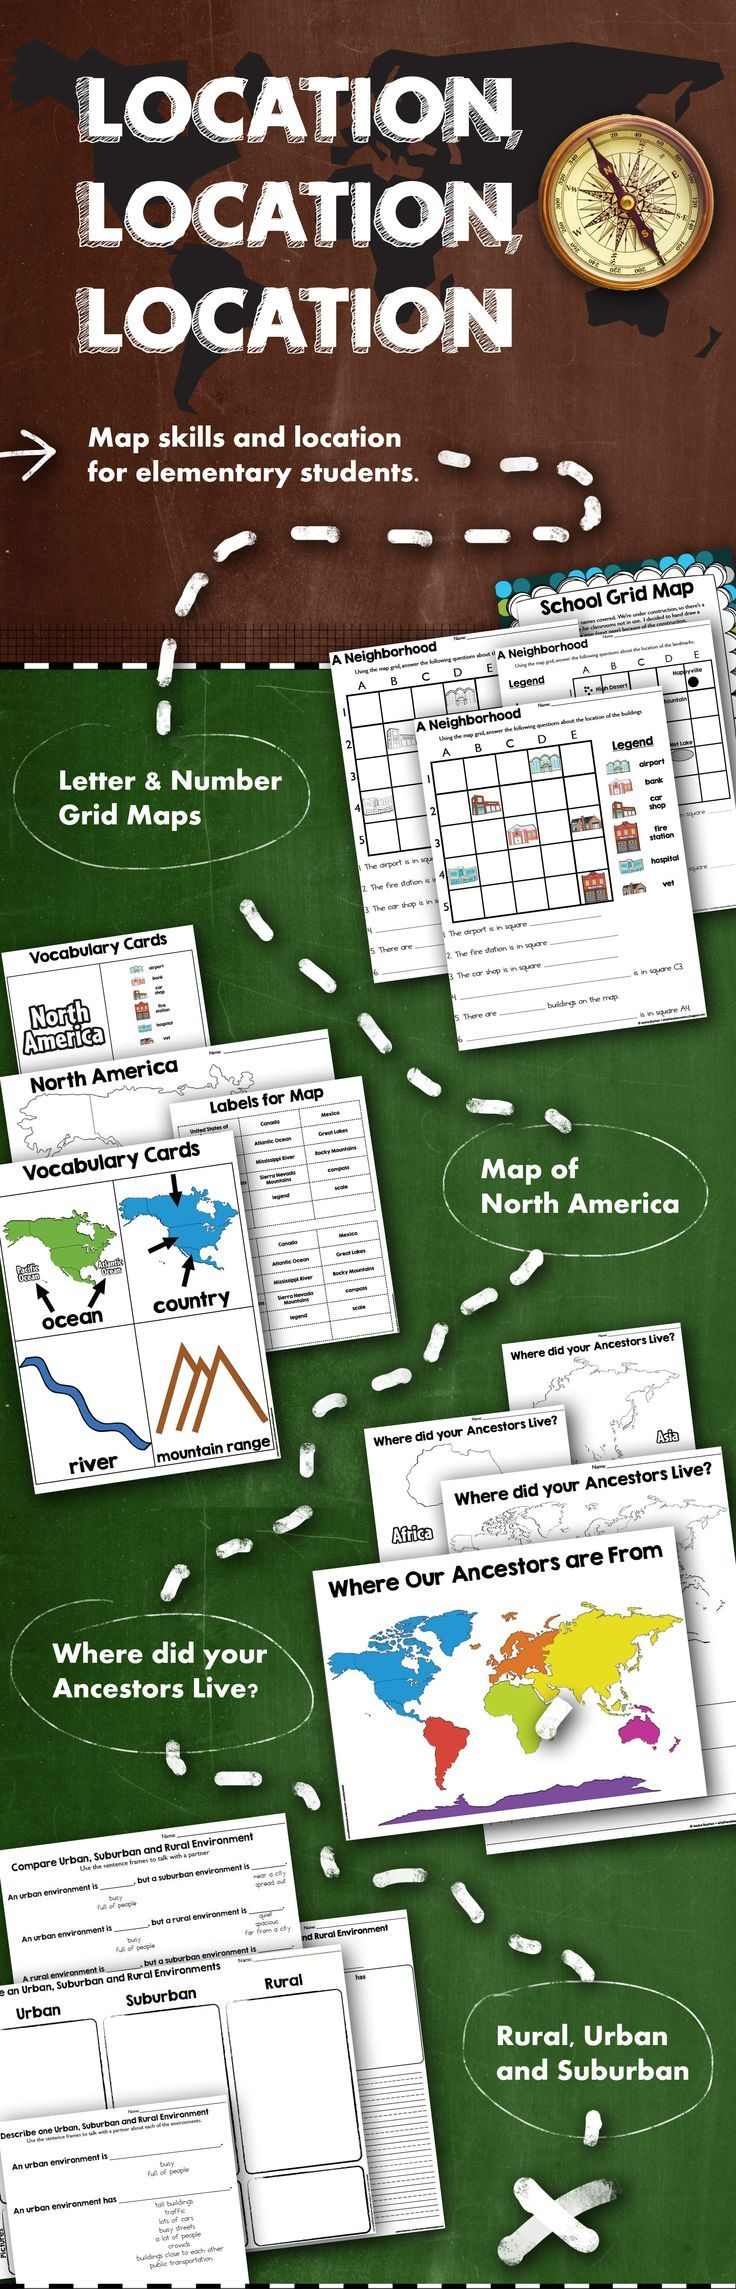 compare and contrast integrated social studies learning Using a matrix or chart, compare and contrast the pros and cons of the following: 1 integrated social studies learning - answered by a verified writing tutor.